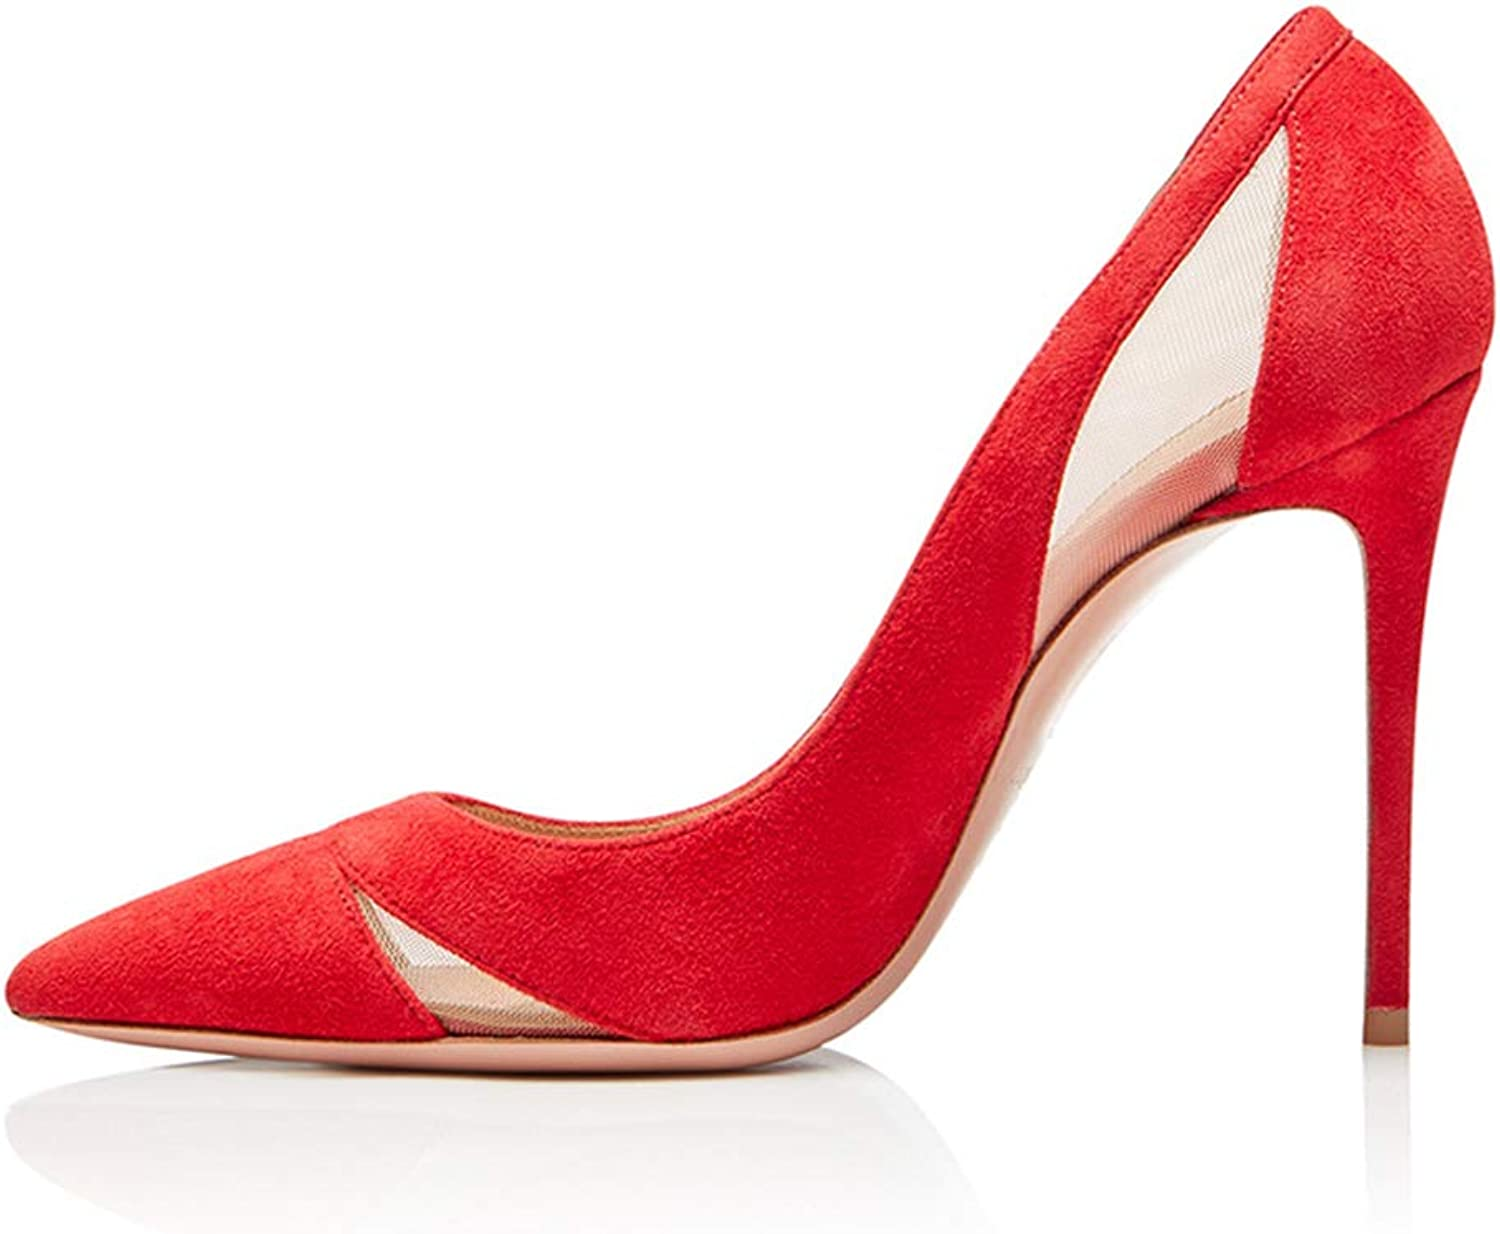 Women's Ladies Pumps Stiletto High Heels shoes Summer Heeled Sandals Suede Slip On Pointed Colsed Toe Dress Evening Black Red